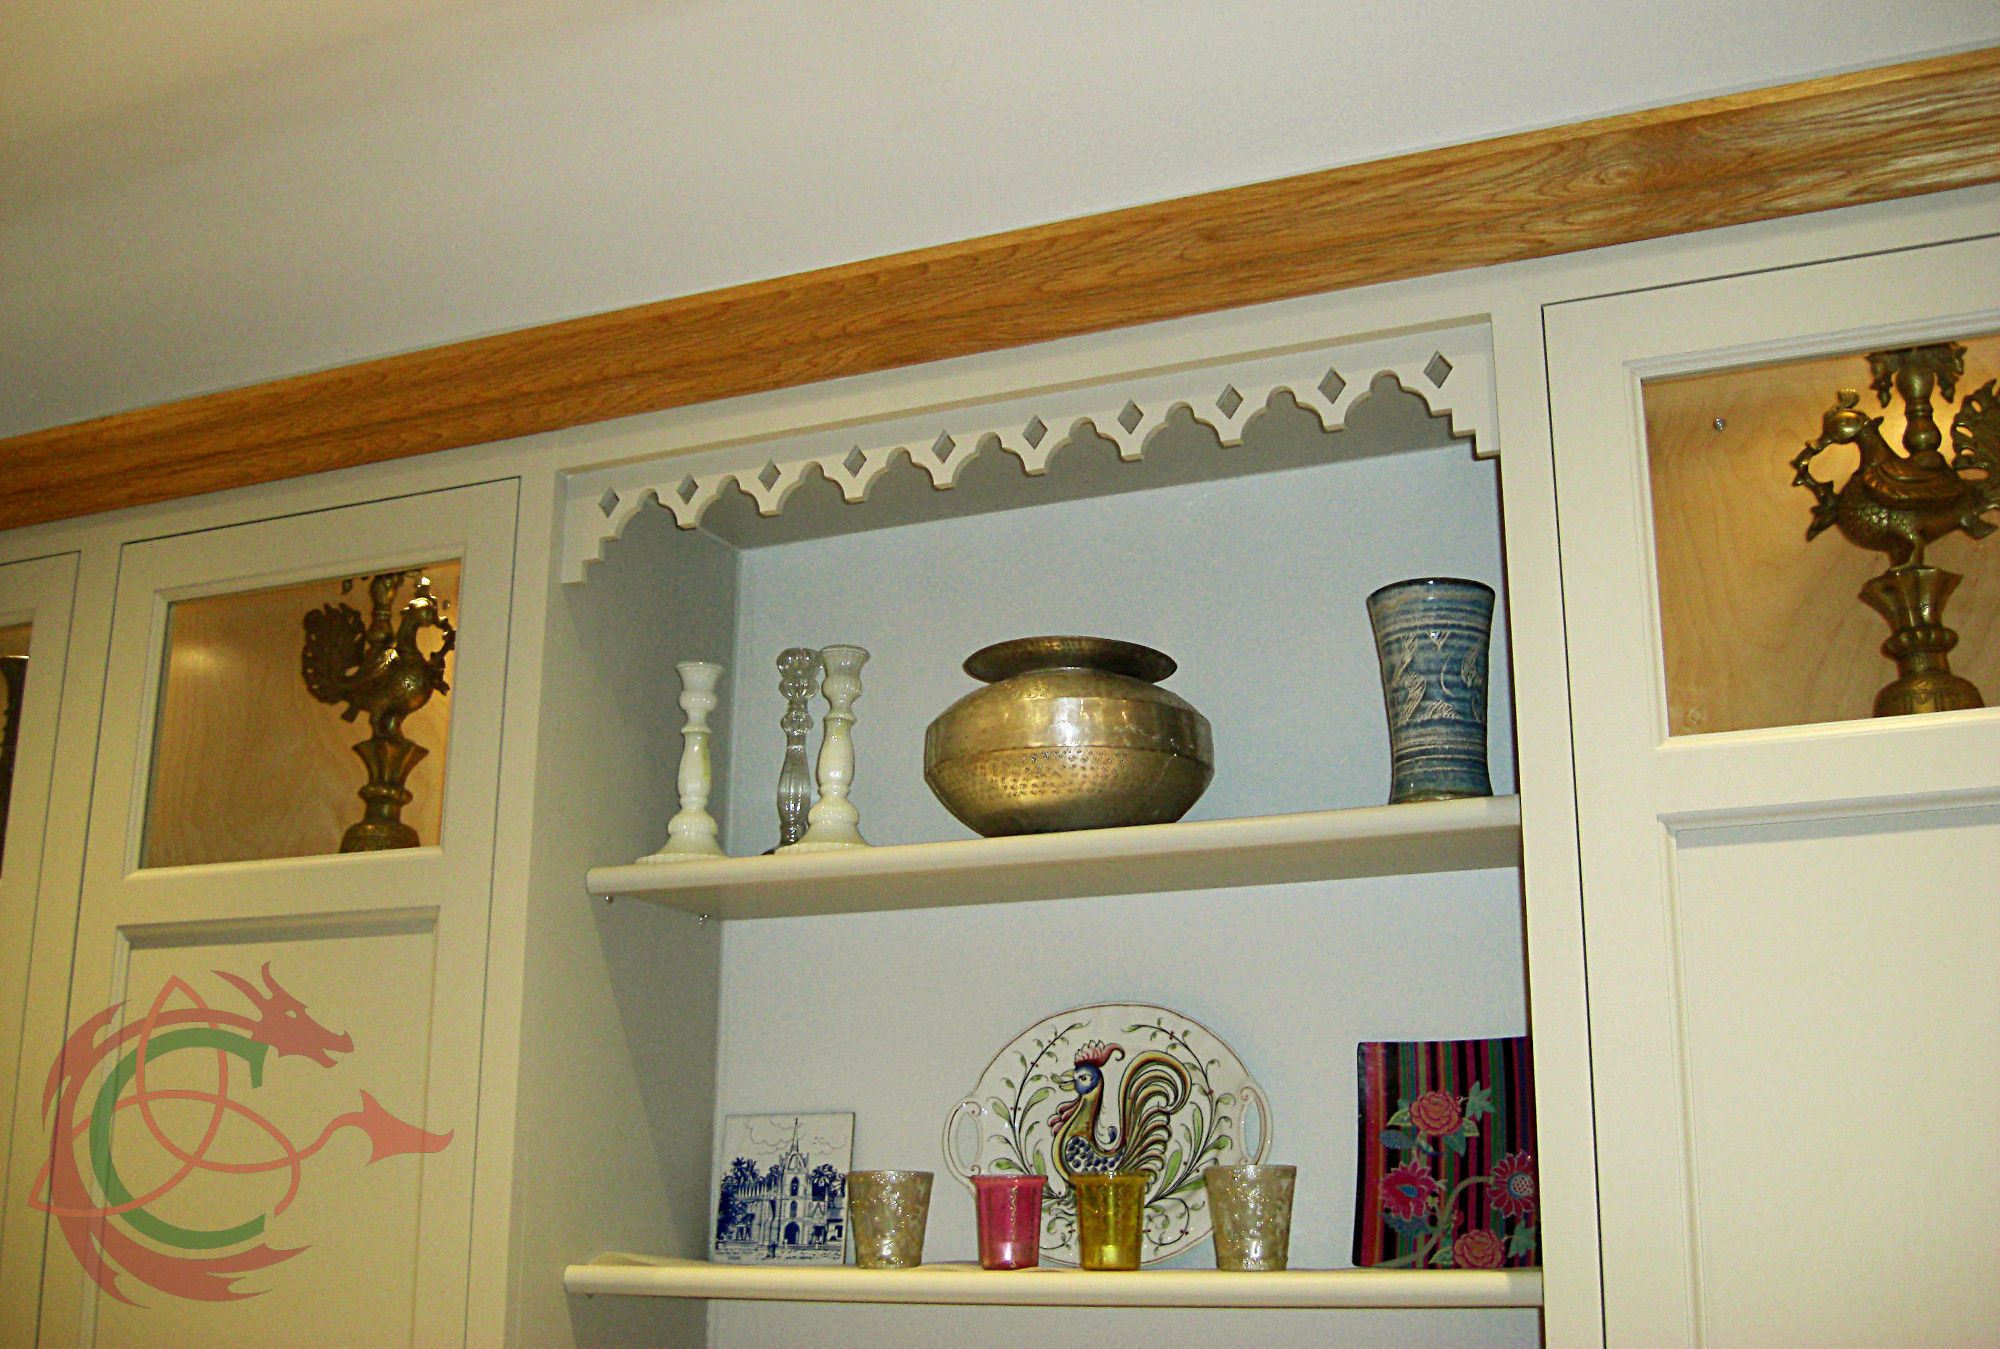 Kitchen wall cabinets with decorative fretwork freize